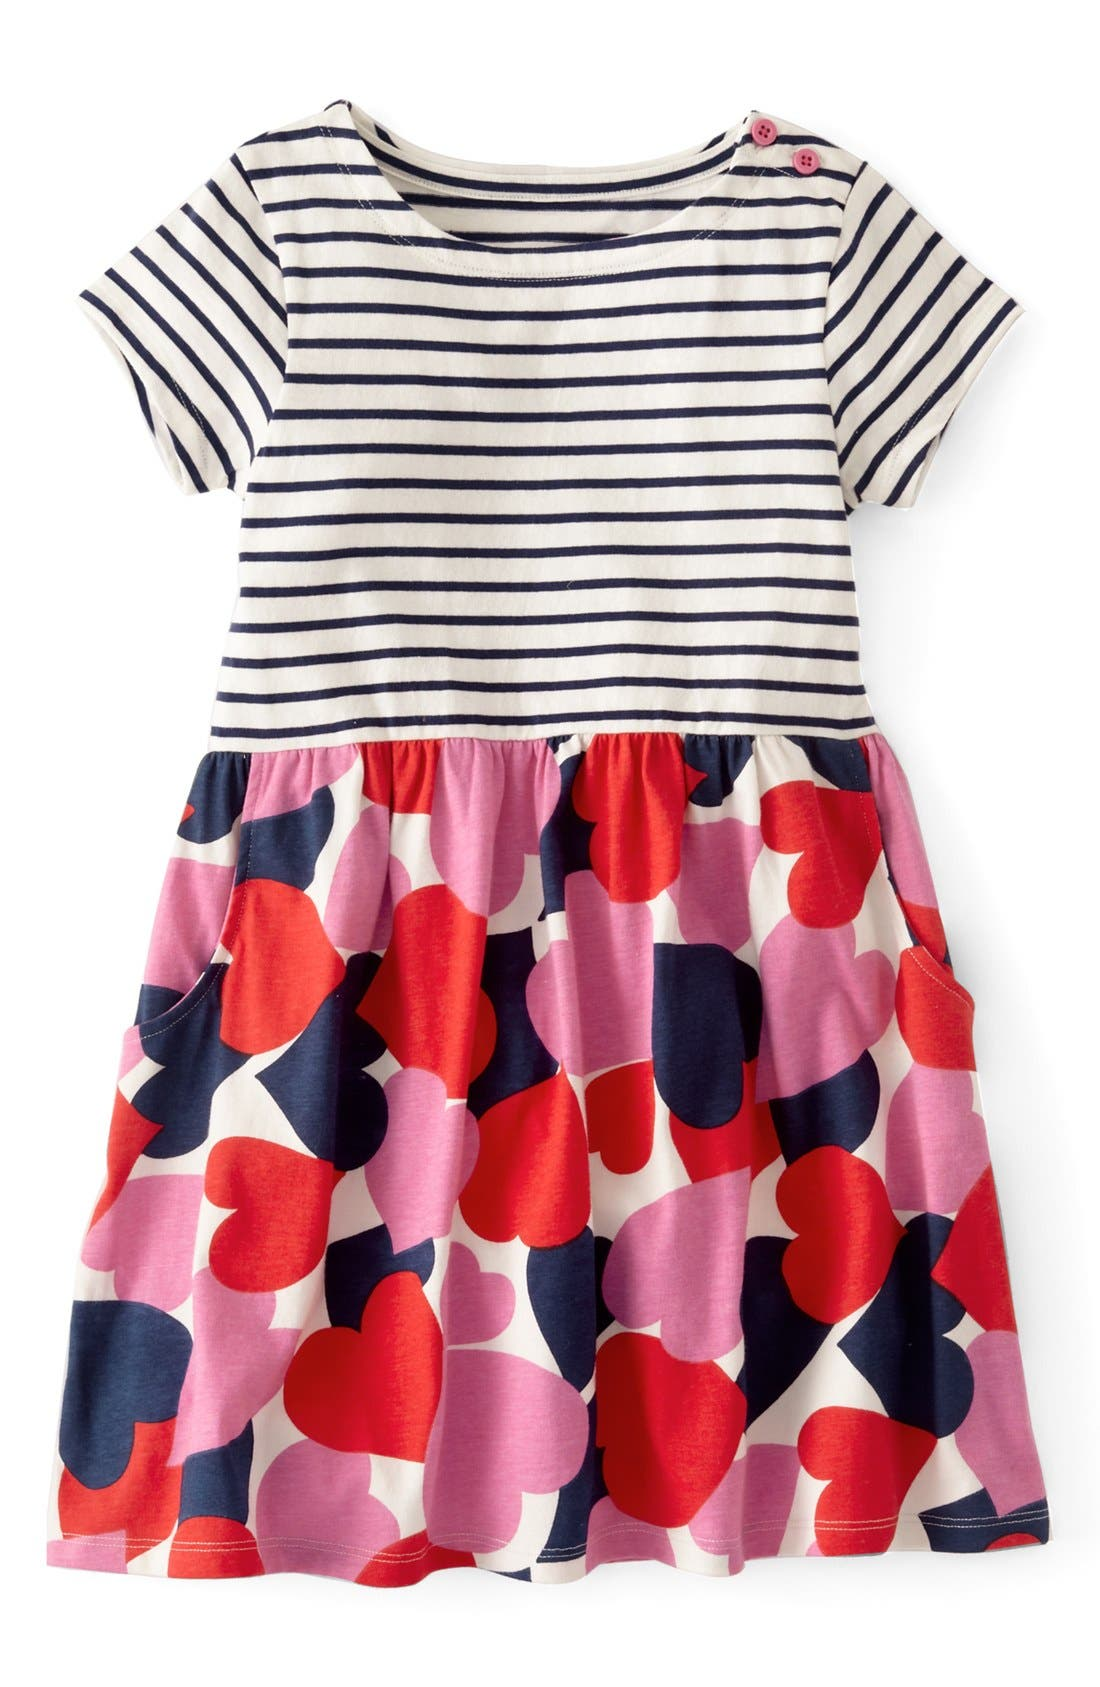 Alternate Image 1 Selected - Mini Boden 'Hotchpotch' Jersey Dress (Toddler Girls, Little Girls & Big Girls)(Online Only)